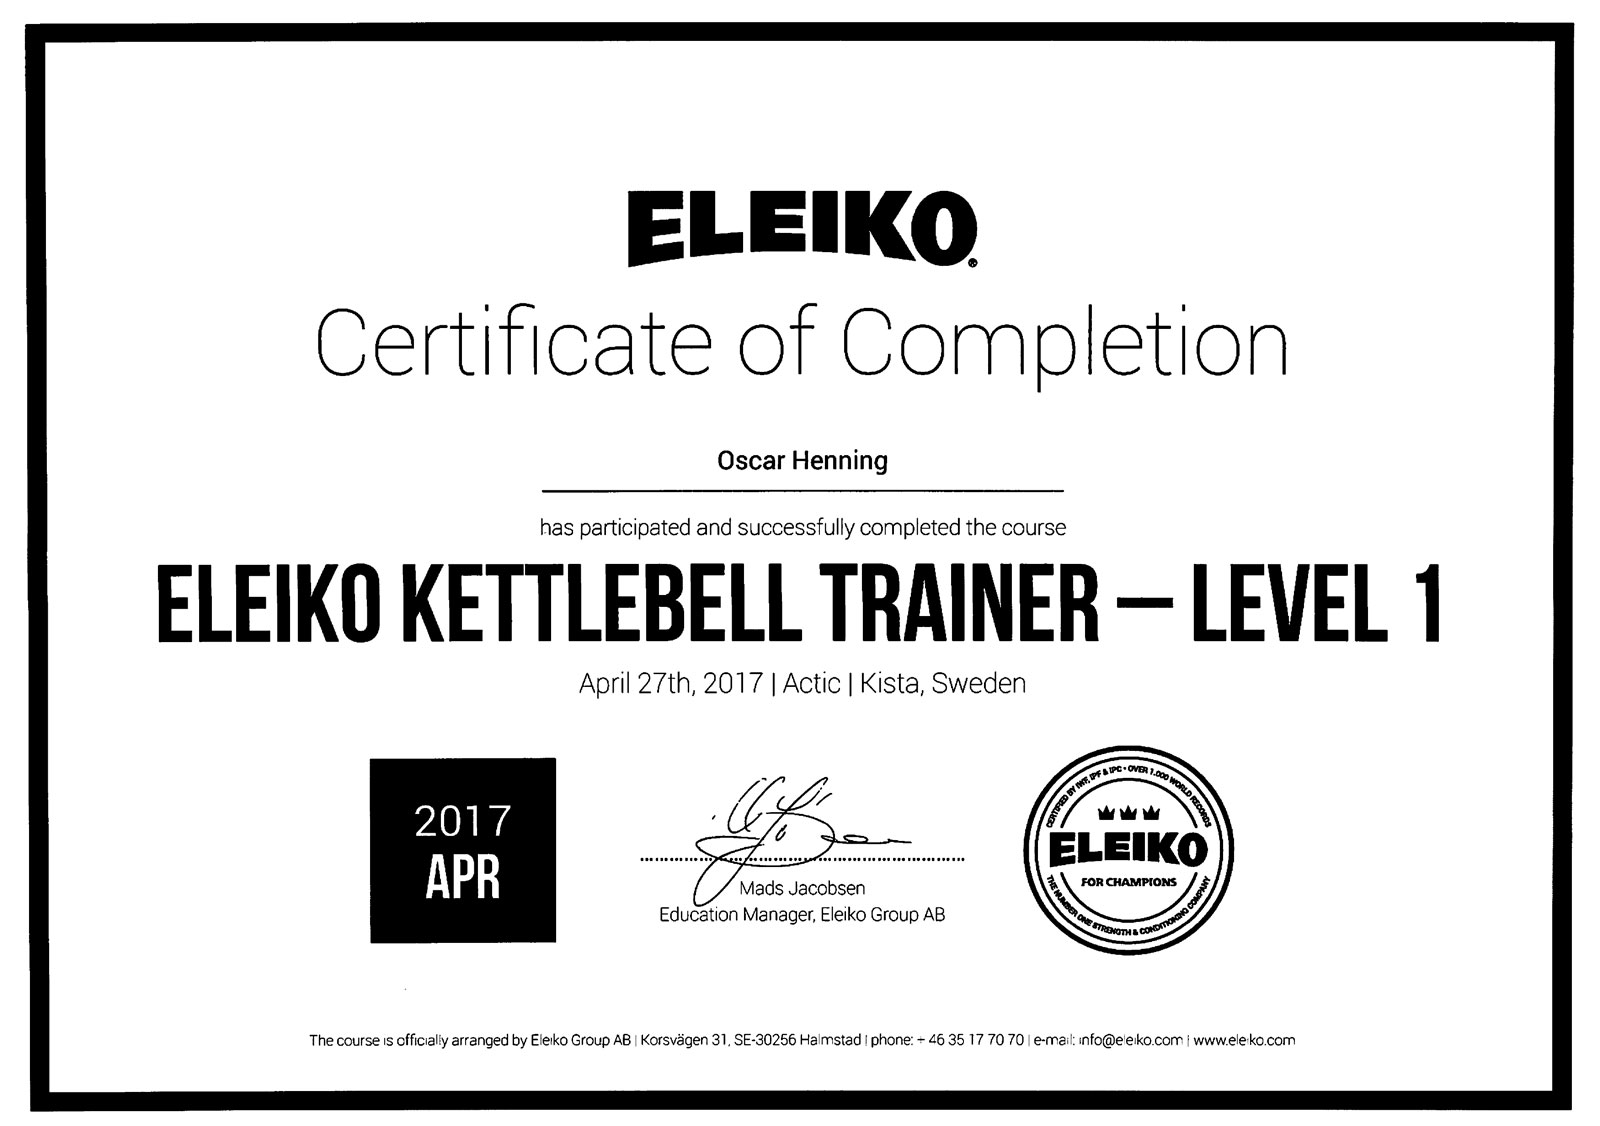 Diplom Eleiko Kettlebell Trailer Level 1